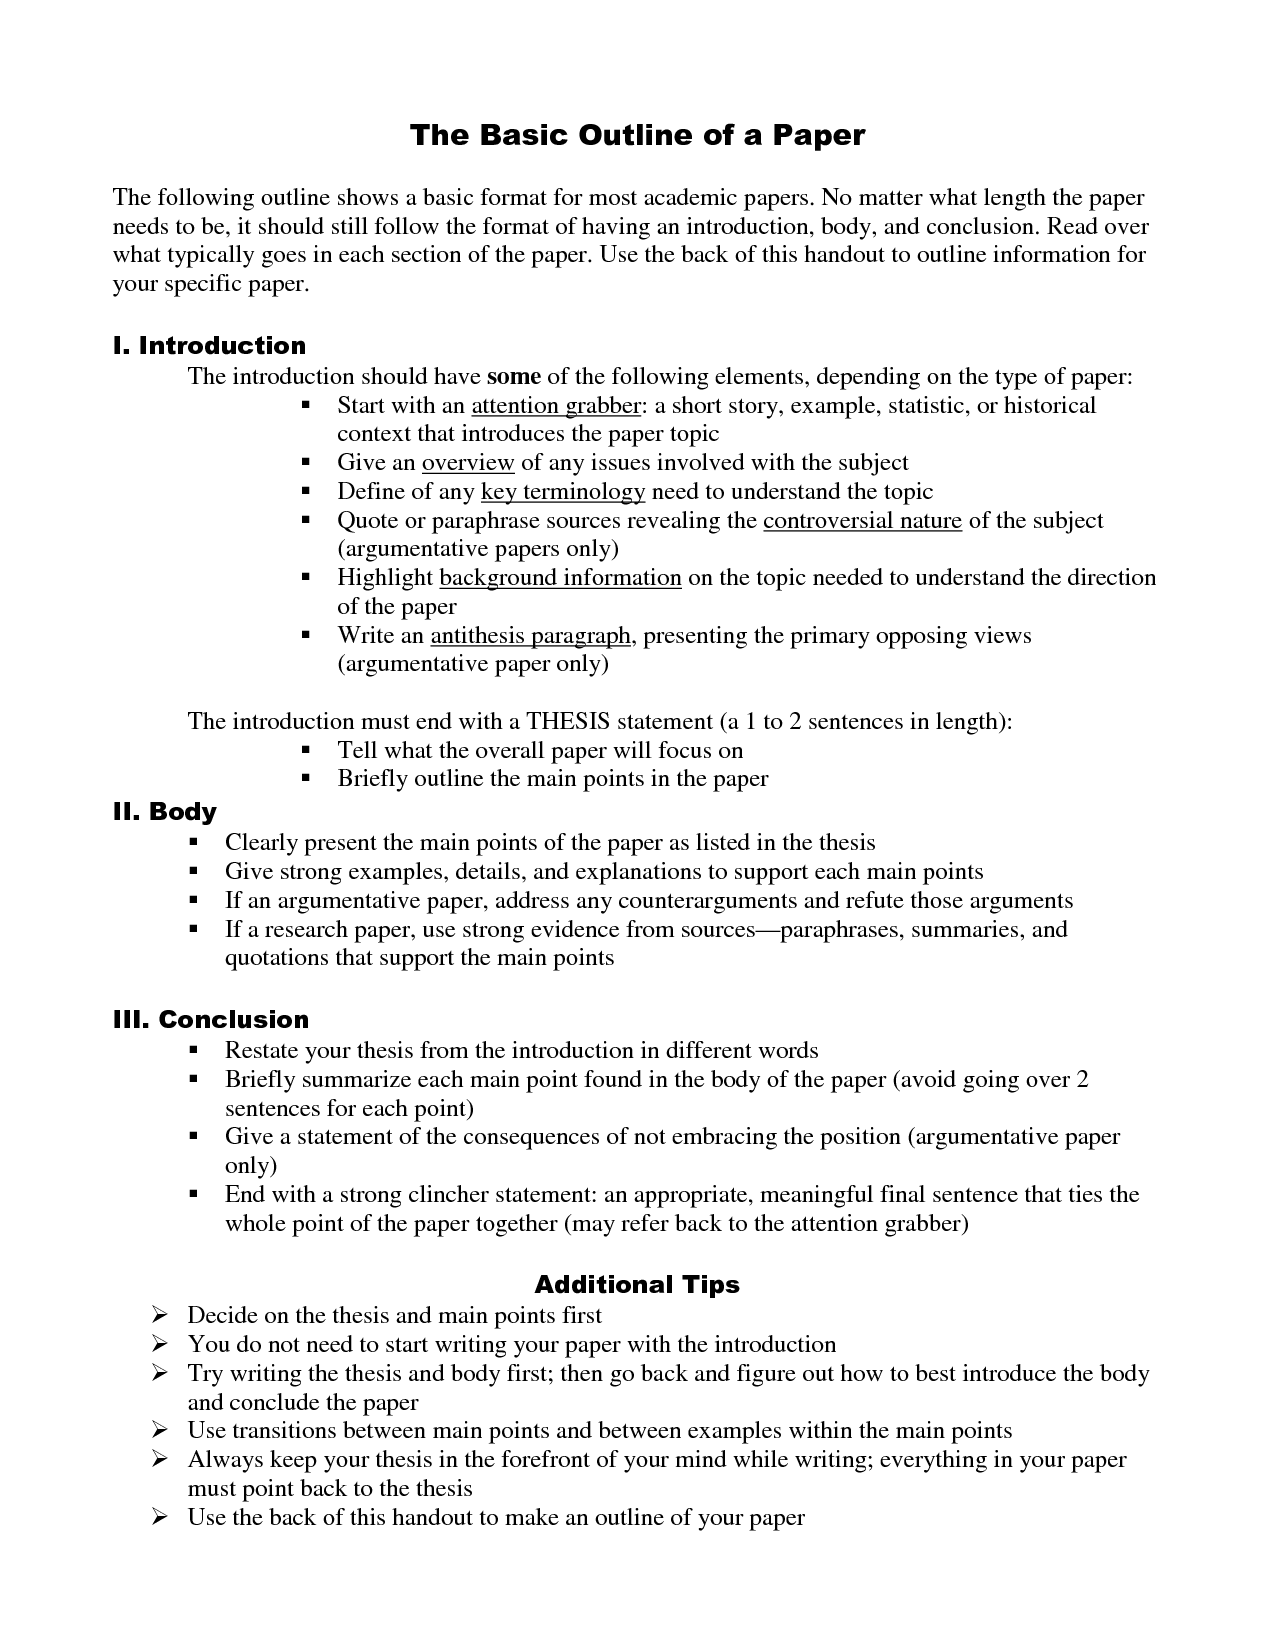 026 How To Write An Outline Essay Excellent In Mla Format For University Full